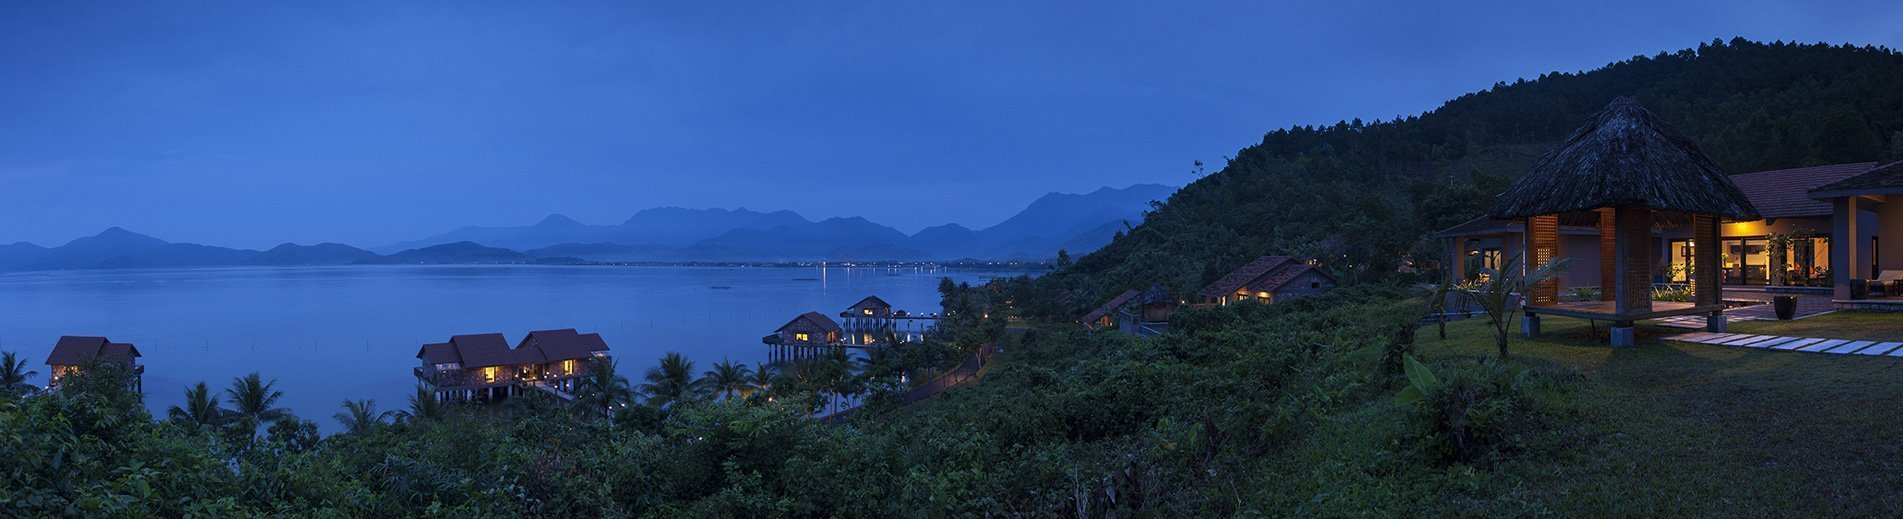 The Vedana Lagoon resort & spa at dusk. Hue, Vietnam.